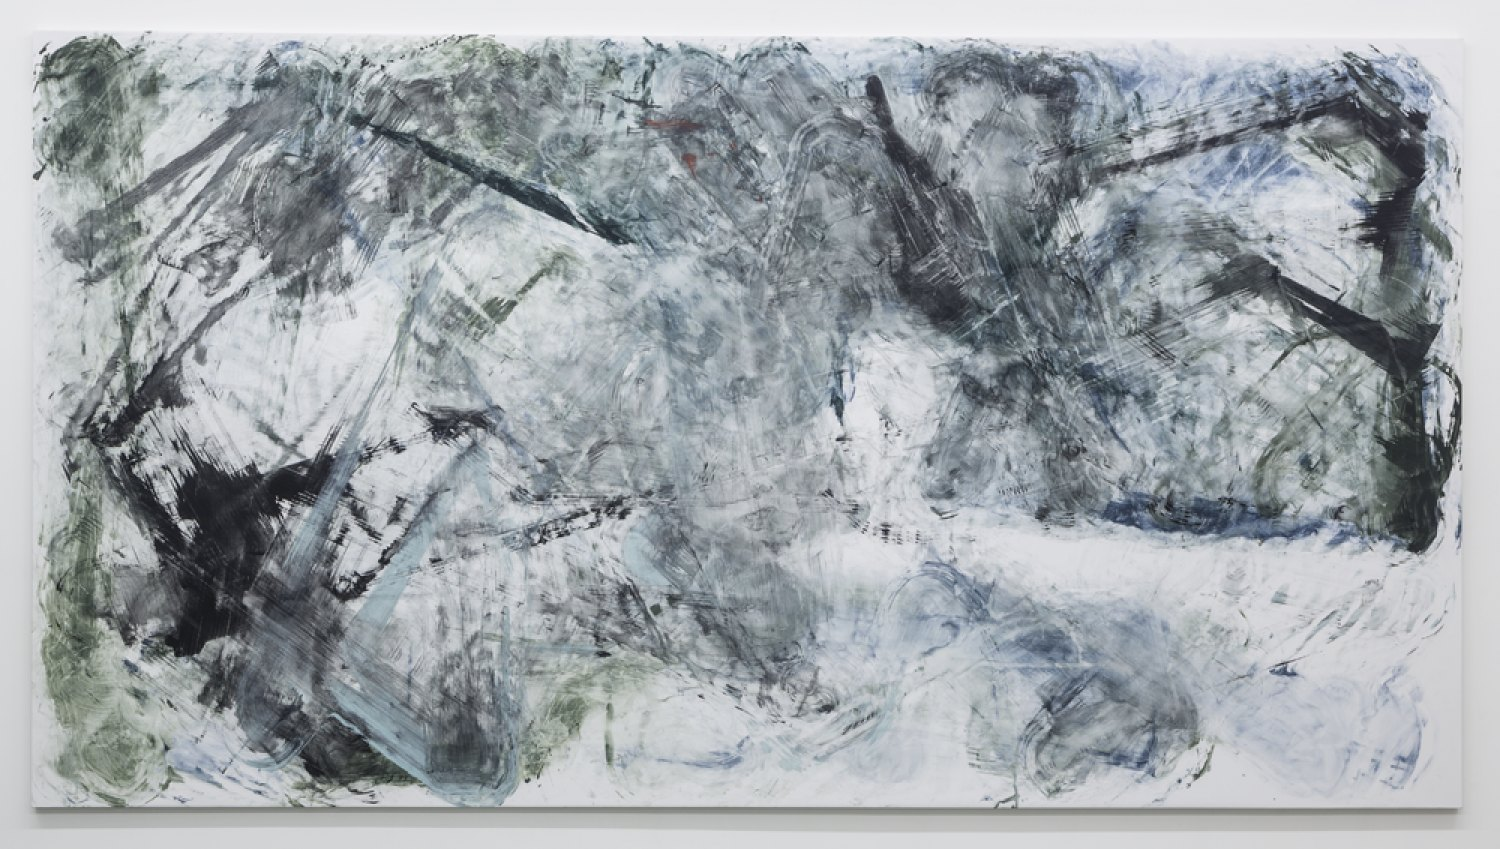 Reena Spaulings Later Seascapes 7, 2015 Farrow & Ball´s Estate Emulsions on canvas, 270 × 500 × 5 cm